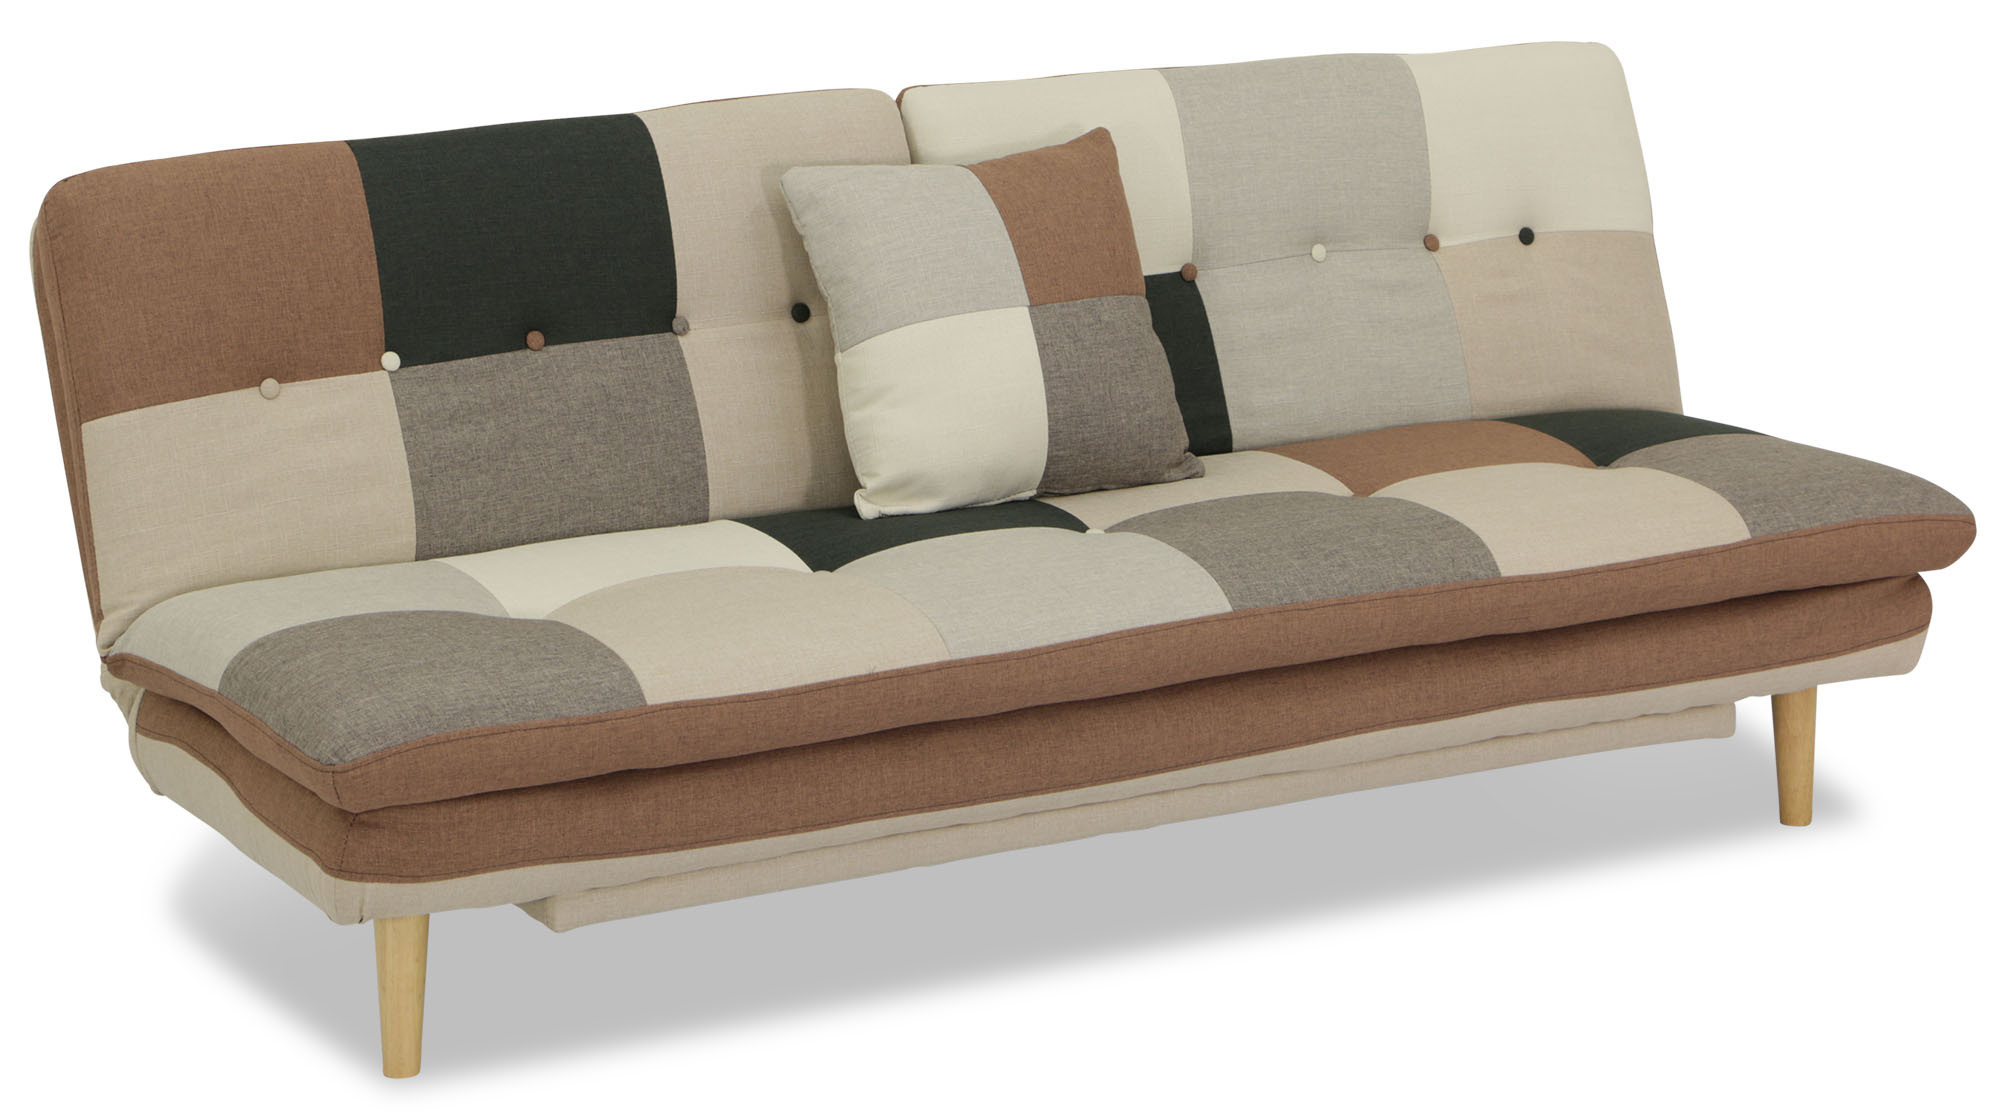 Jeza Patchwork Sofa Bed Grey Mix Furniture Home Decor Fortytwo